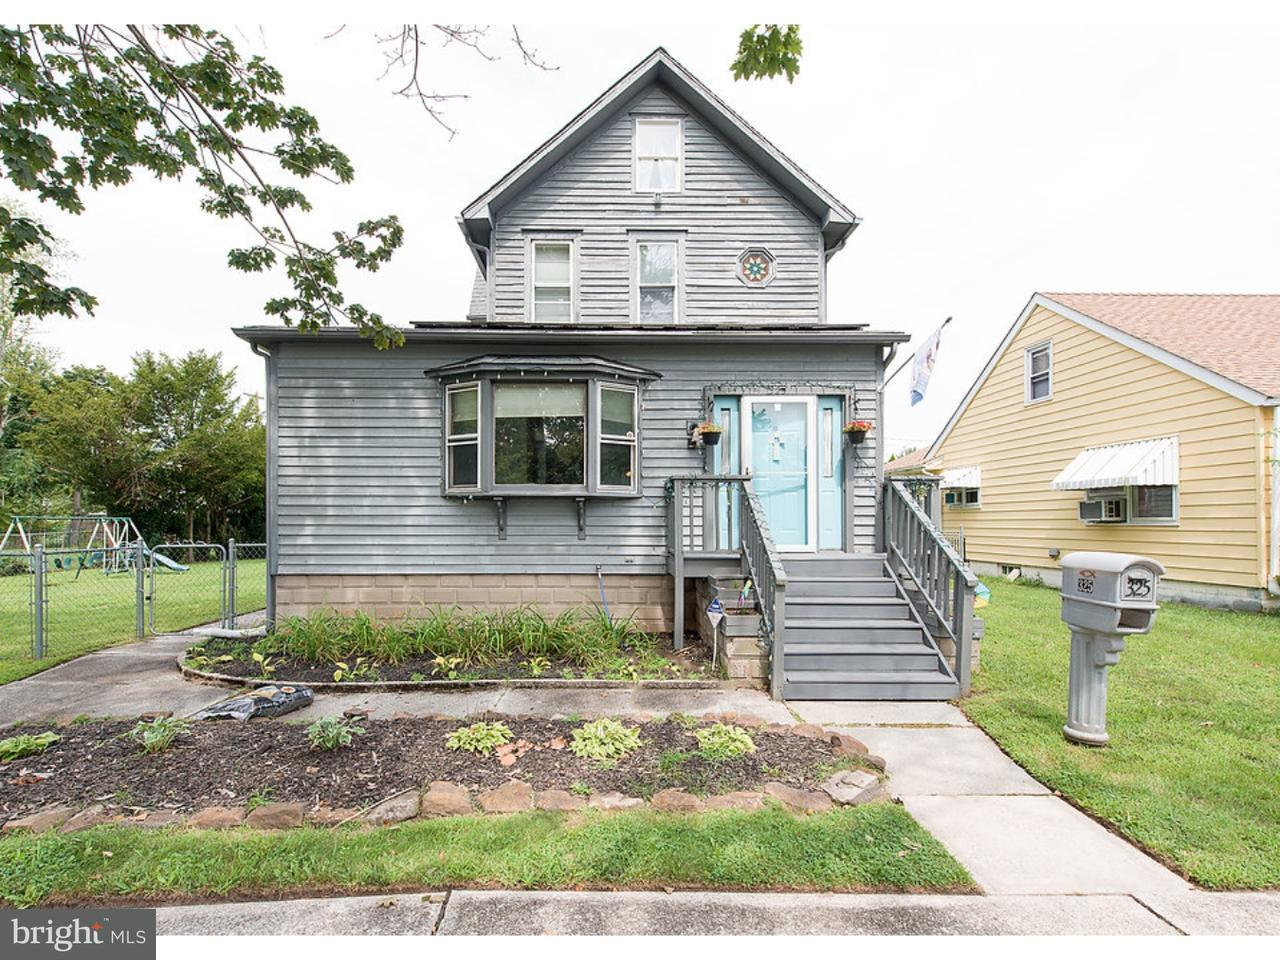 Single Family Home for Sale at 325 SAINT LOUIS Avenue Egg Harbor City, New Jersey 08215 United States